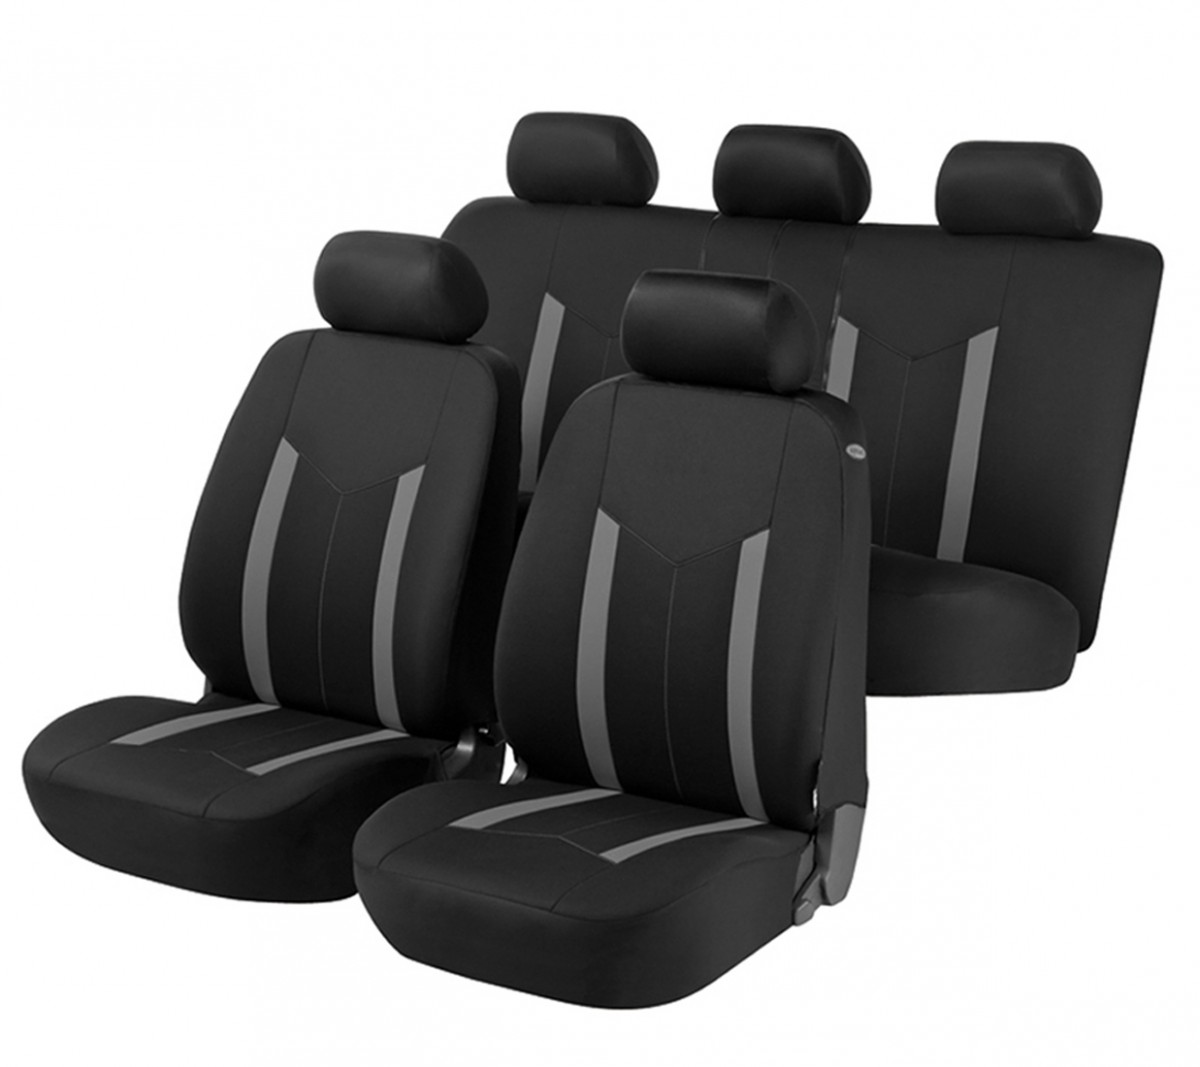 autositzbezug schonbezug komplett set vw golf vii. Black Bedroom Furniture Sets. Home Design Ideas